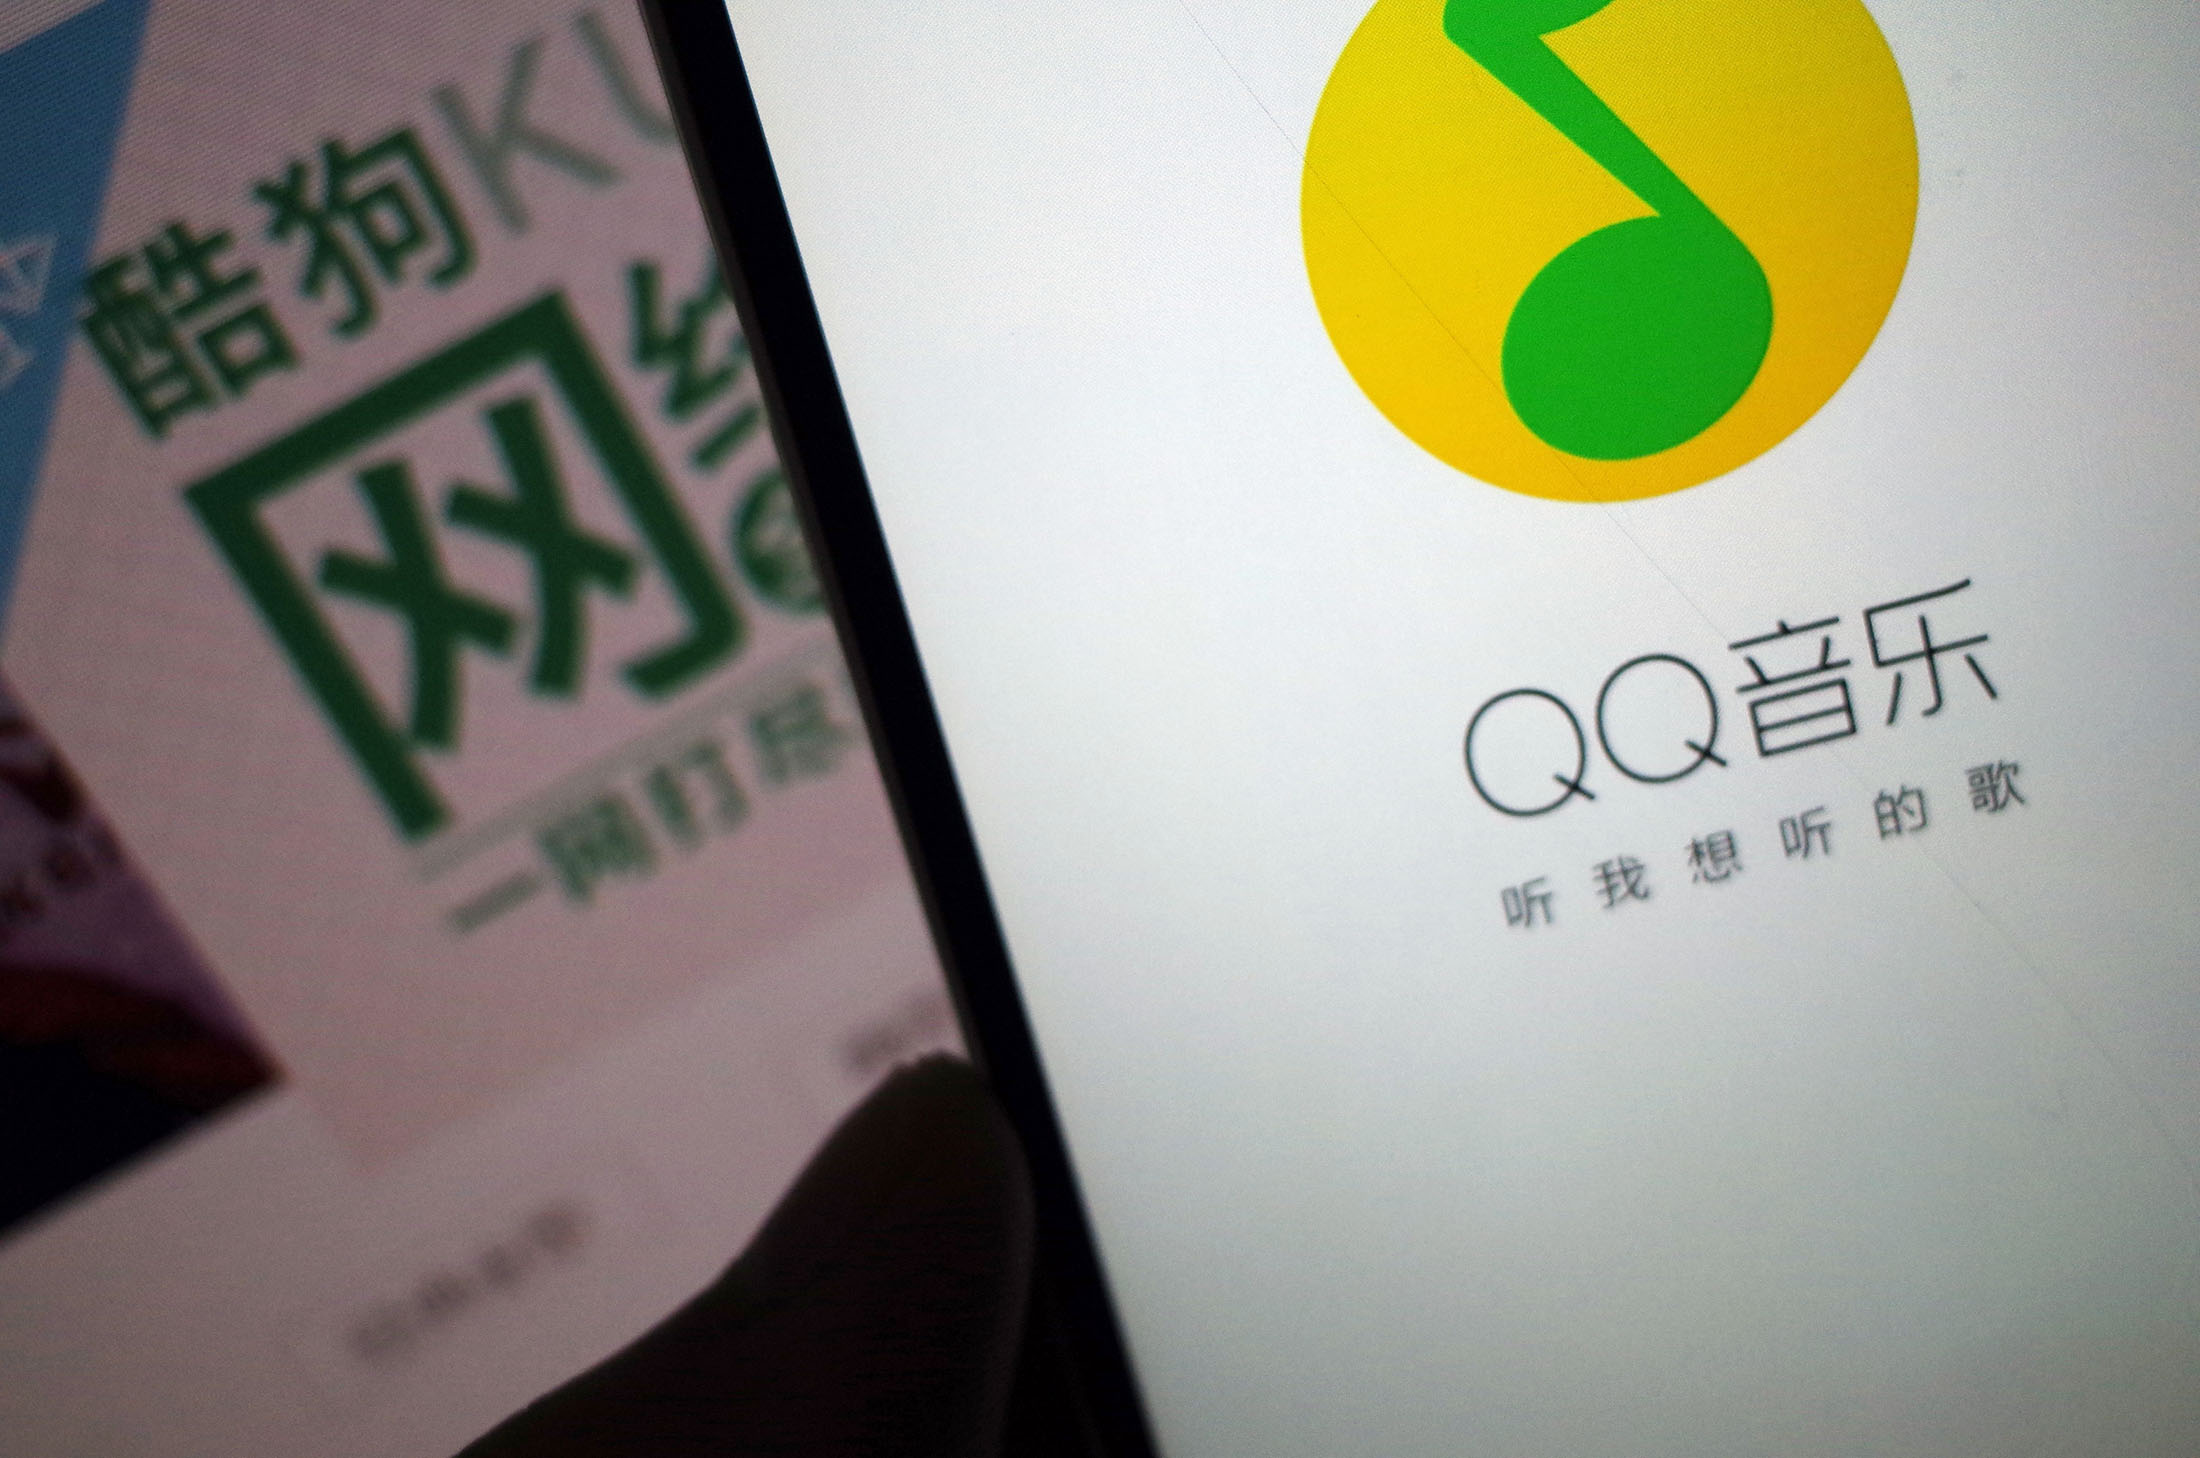 Tencent Music Seeks Pre-IPO Funds at $10 Billion Value - Bloomberg